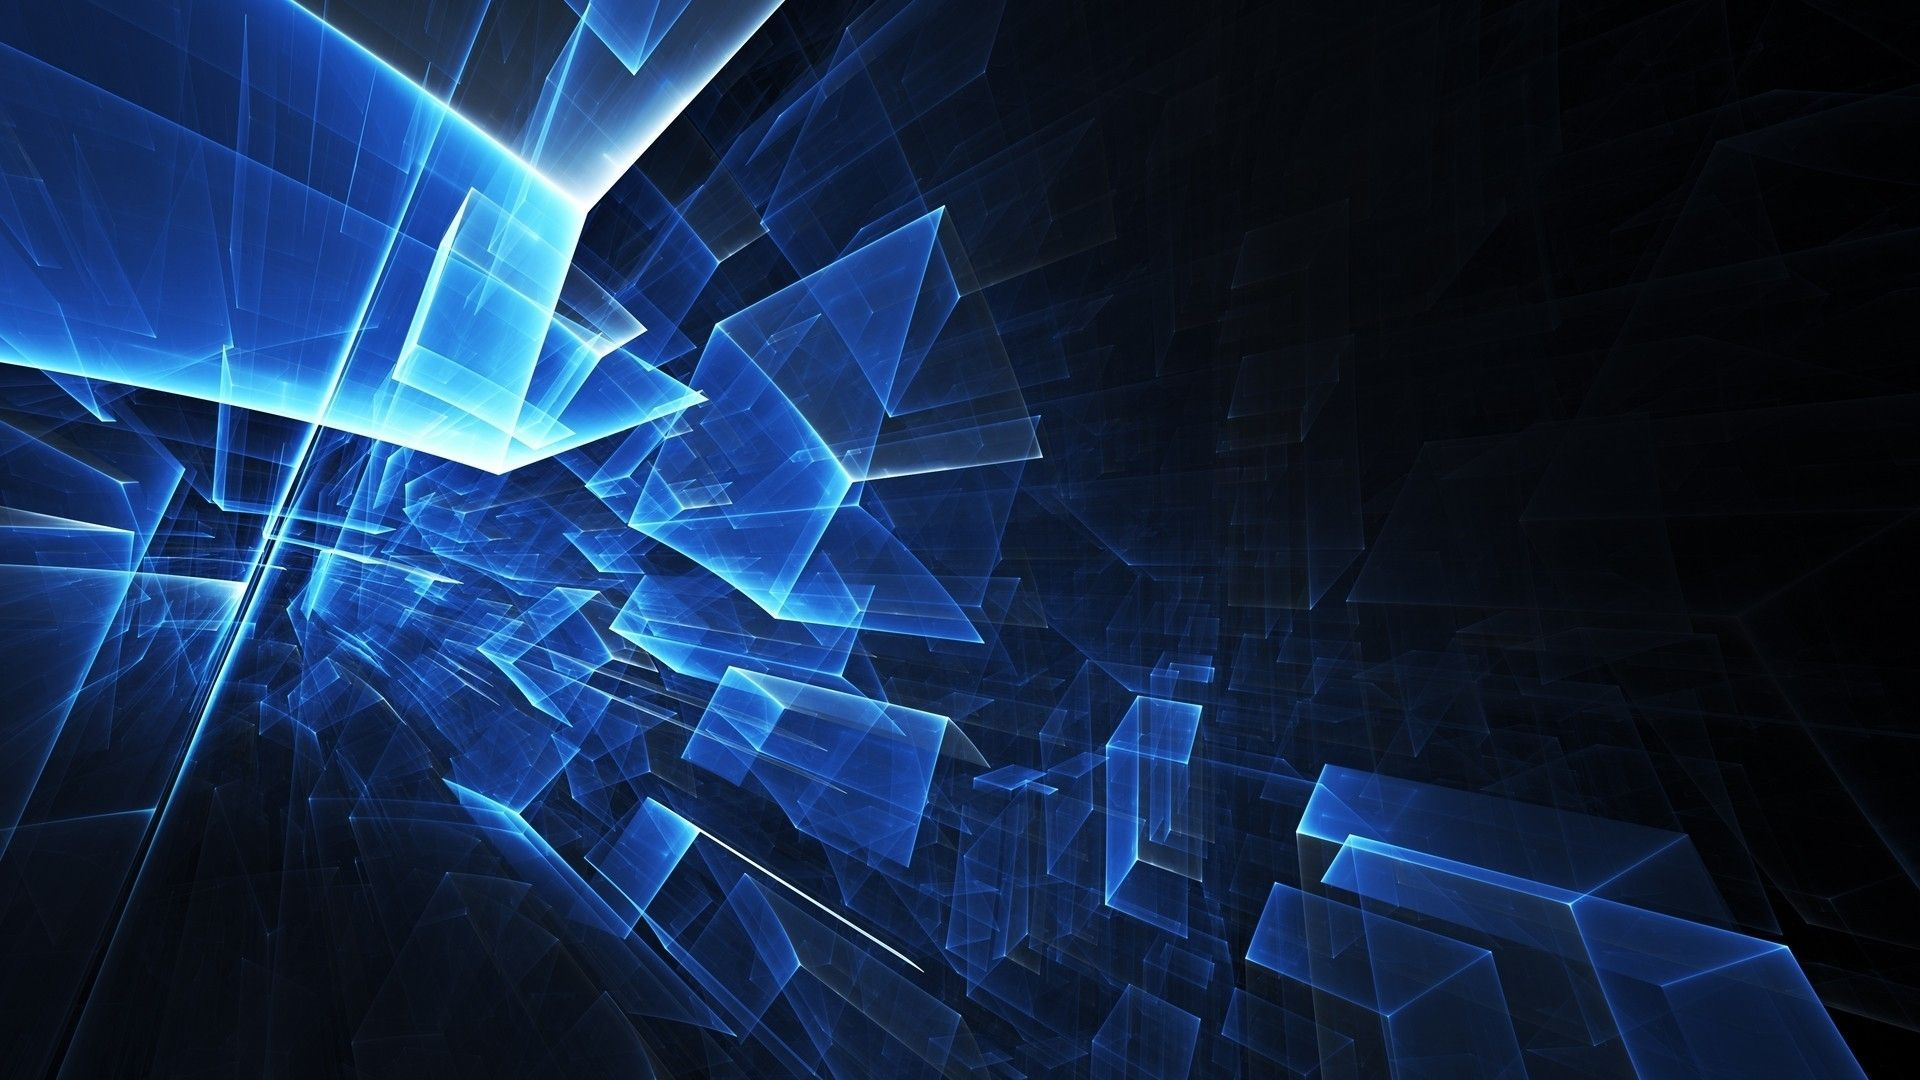 Blue Abstract, Background 3d